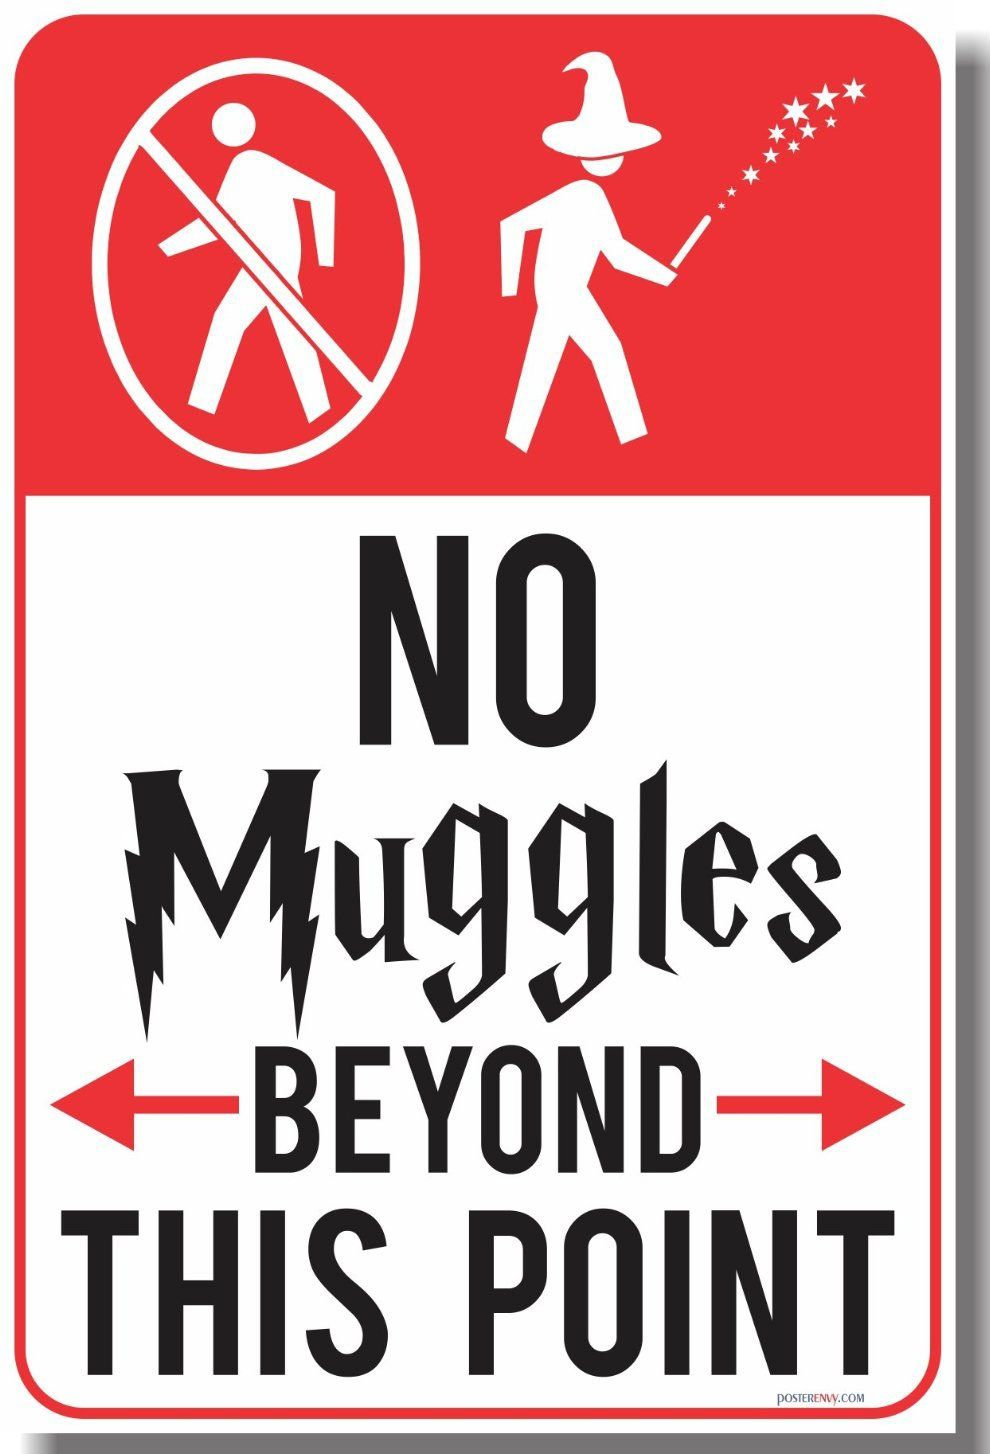 Harry Potter Wall Sticker No Muggles Beyond This Point Vinyl Wall Decal Home Art